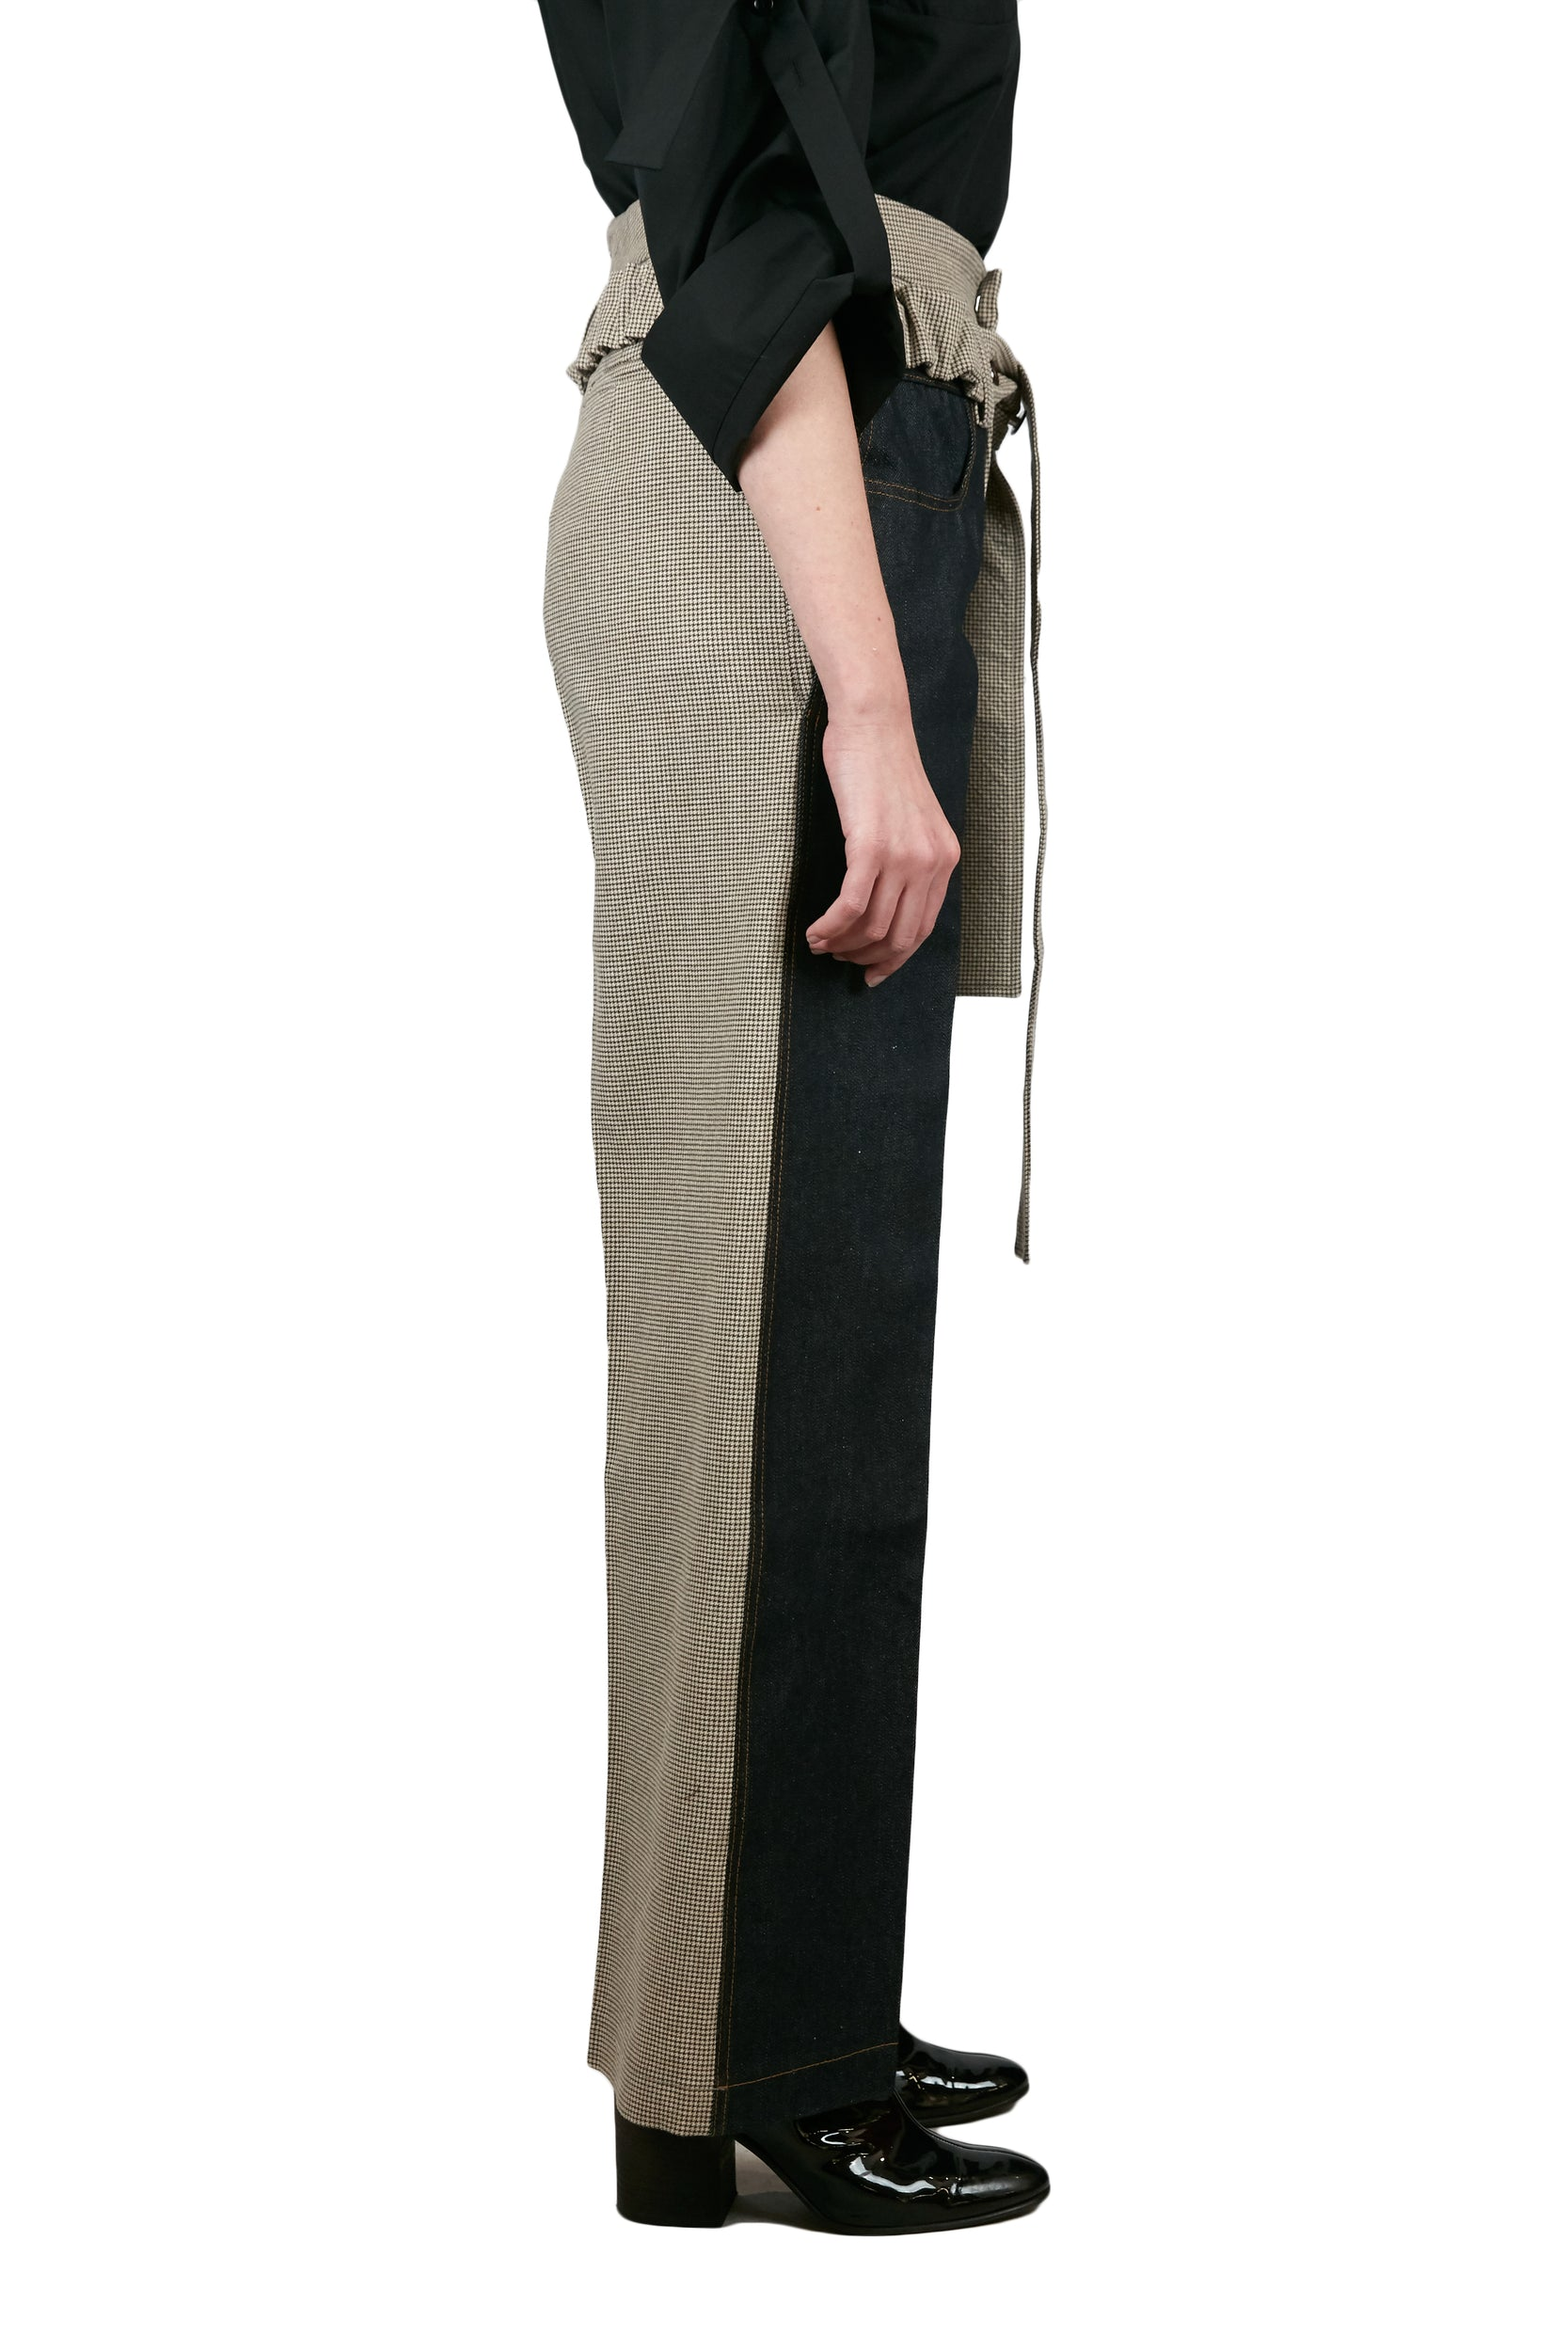 Wool and Denim Trousers with Belt TOP DELADA - NOLM - Clothes Online - nolmau.com - Sydney-Australia Online Shopping